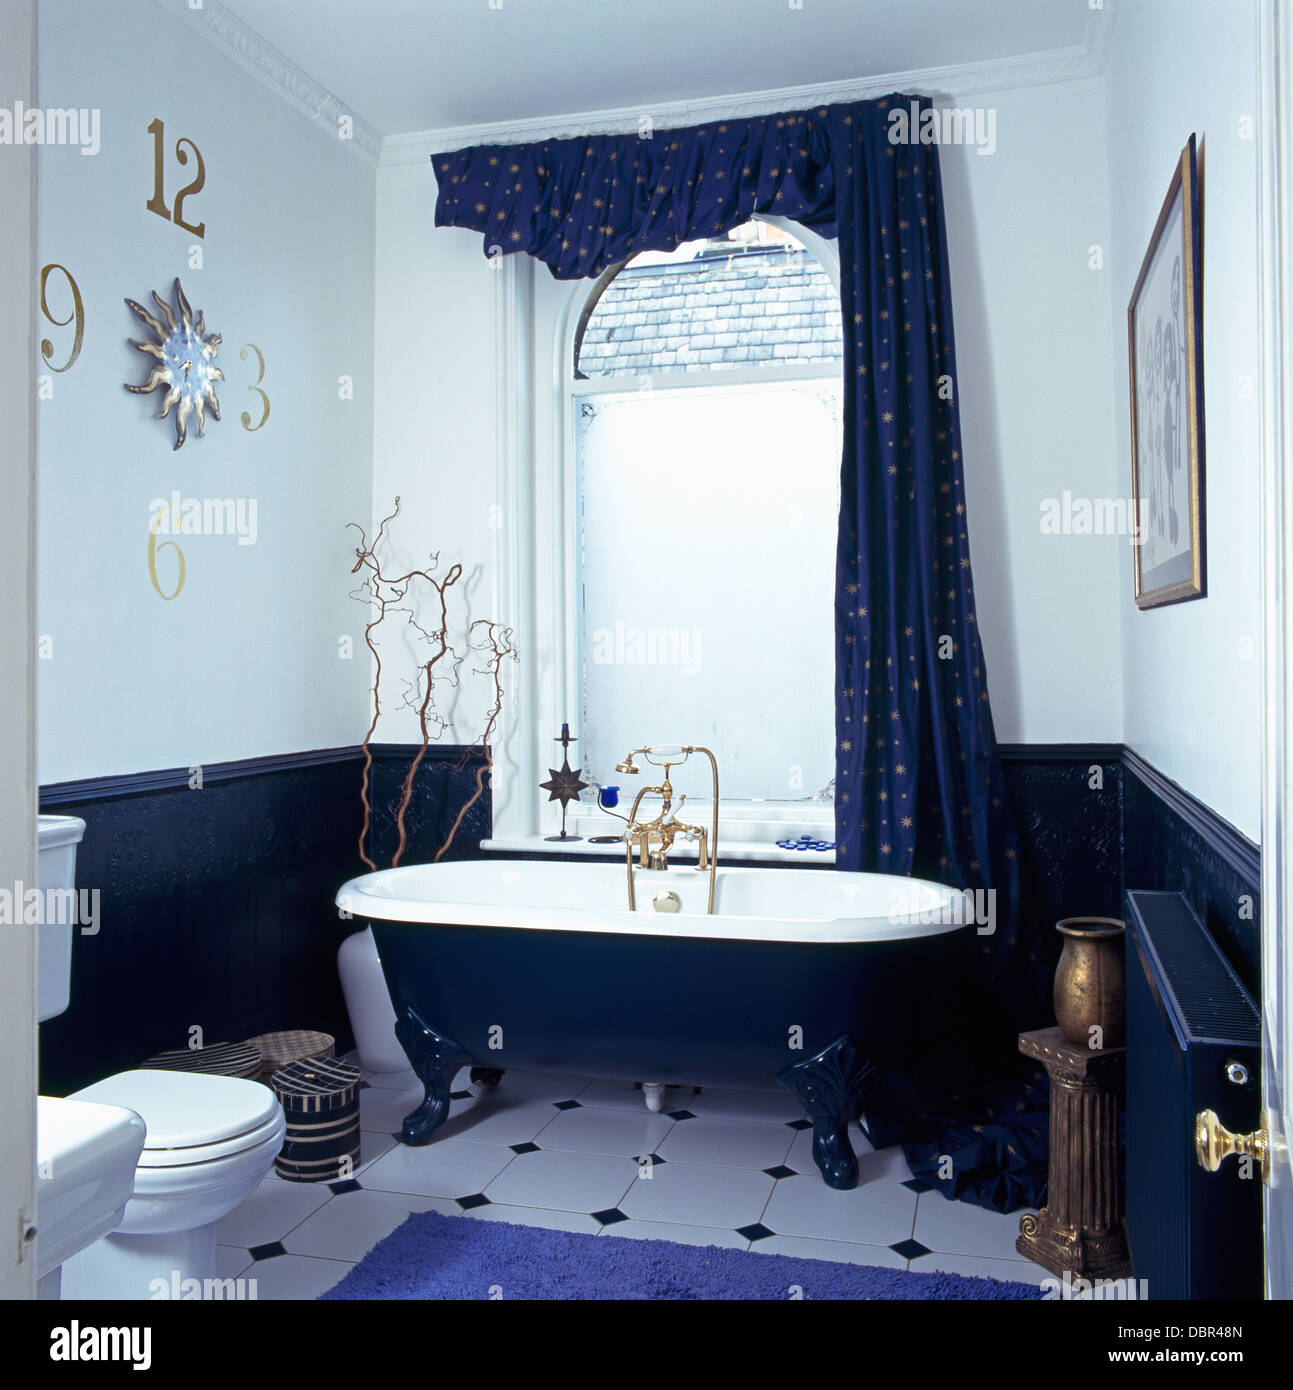 Soft Furnishings Drapes Baths Stock Photos & Soft Furnishings Drapes ...